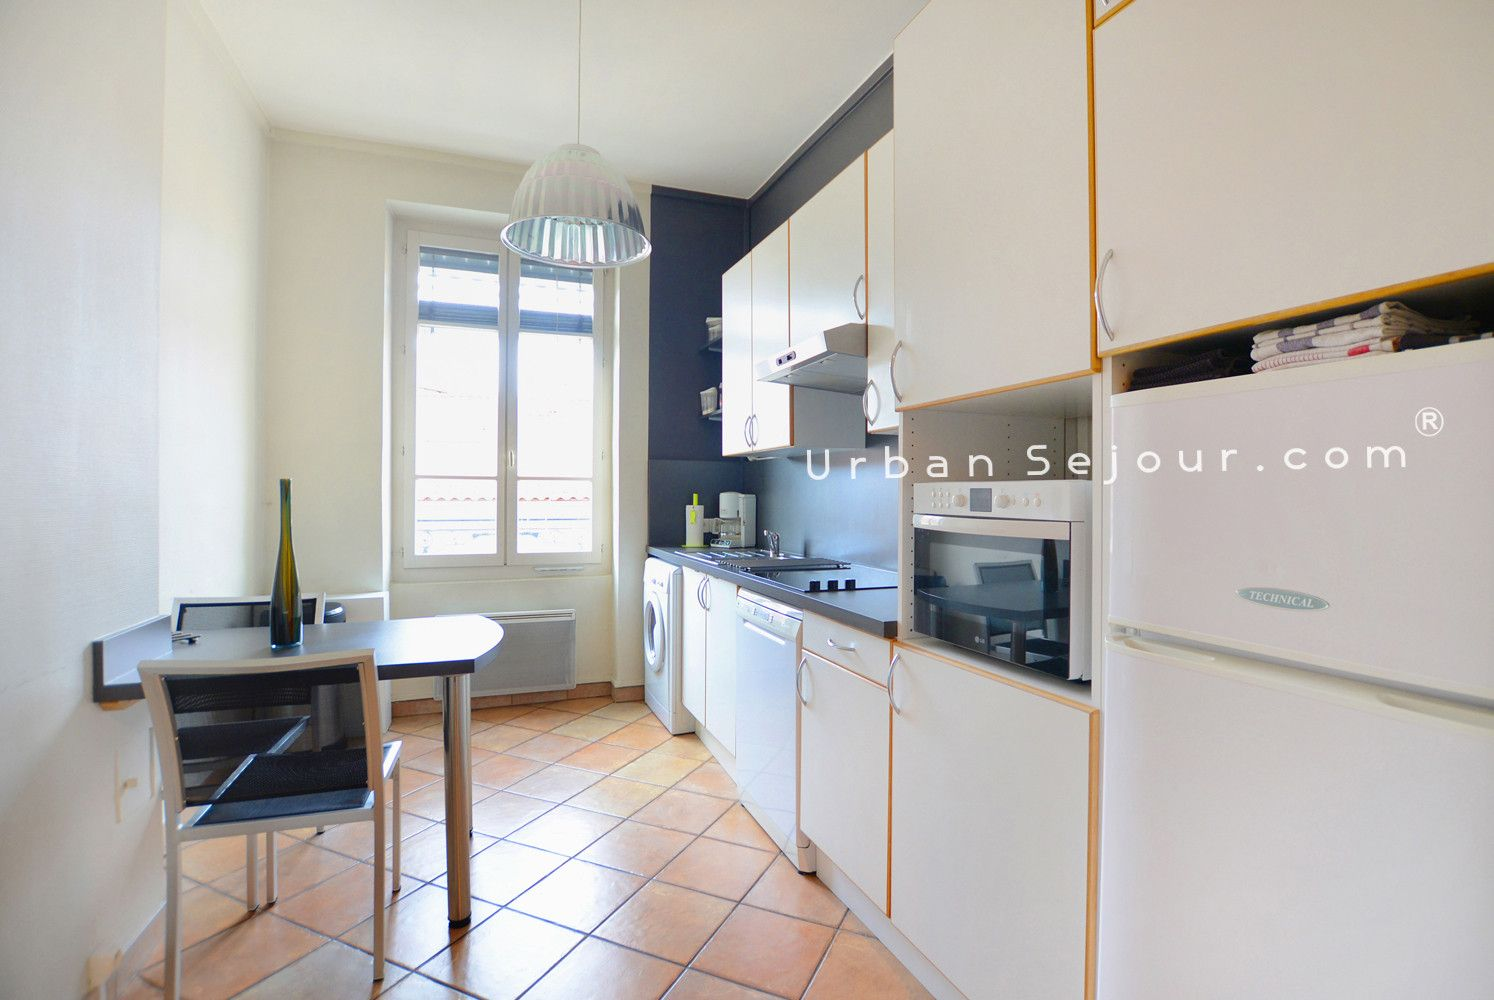 Rental Furnished apartment with 1 bedroom - Seasonal or holiday ...